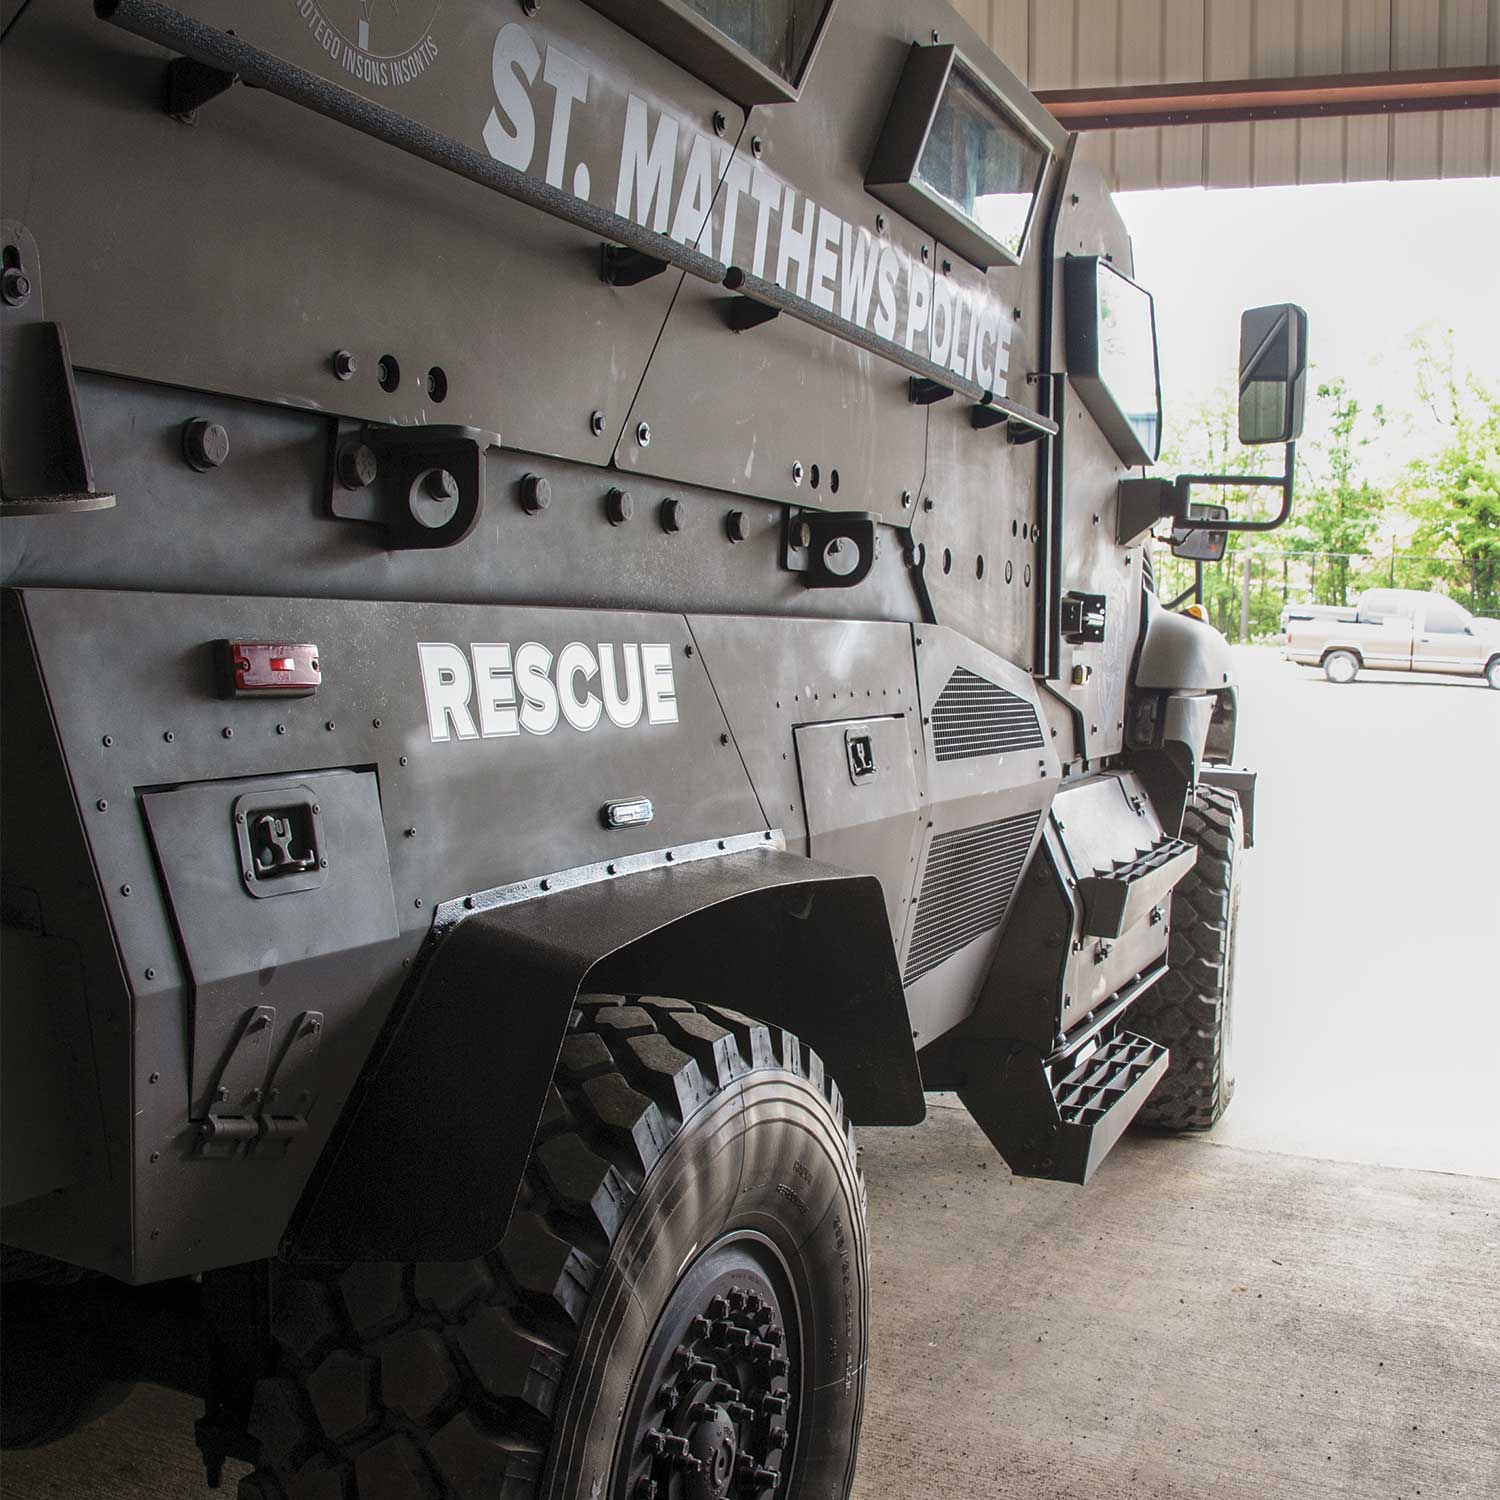 Recently, Saint Matthews Police Department acquired a Mine-Resistant-Ambush-Protected (MRAP) vehicle. Chief Barry Wilkerson explained the vehicle could be used in rescue scenarios or even flood situations. (Photo by Jim Robertson)